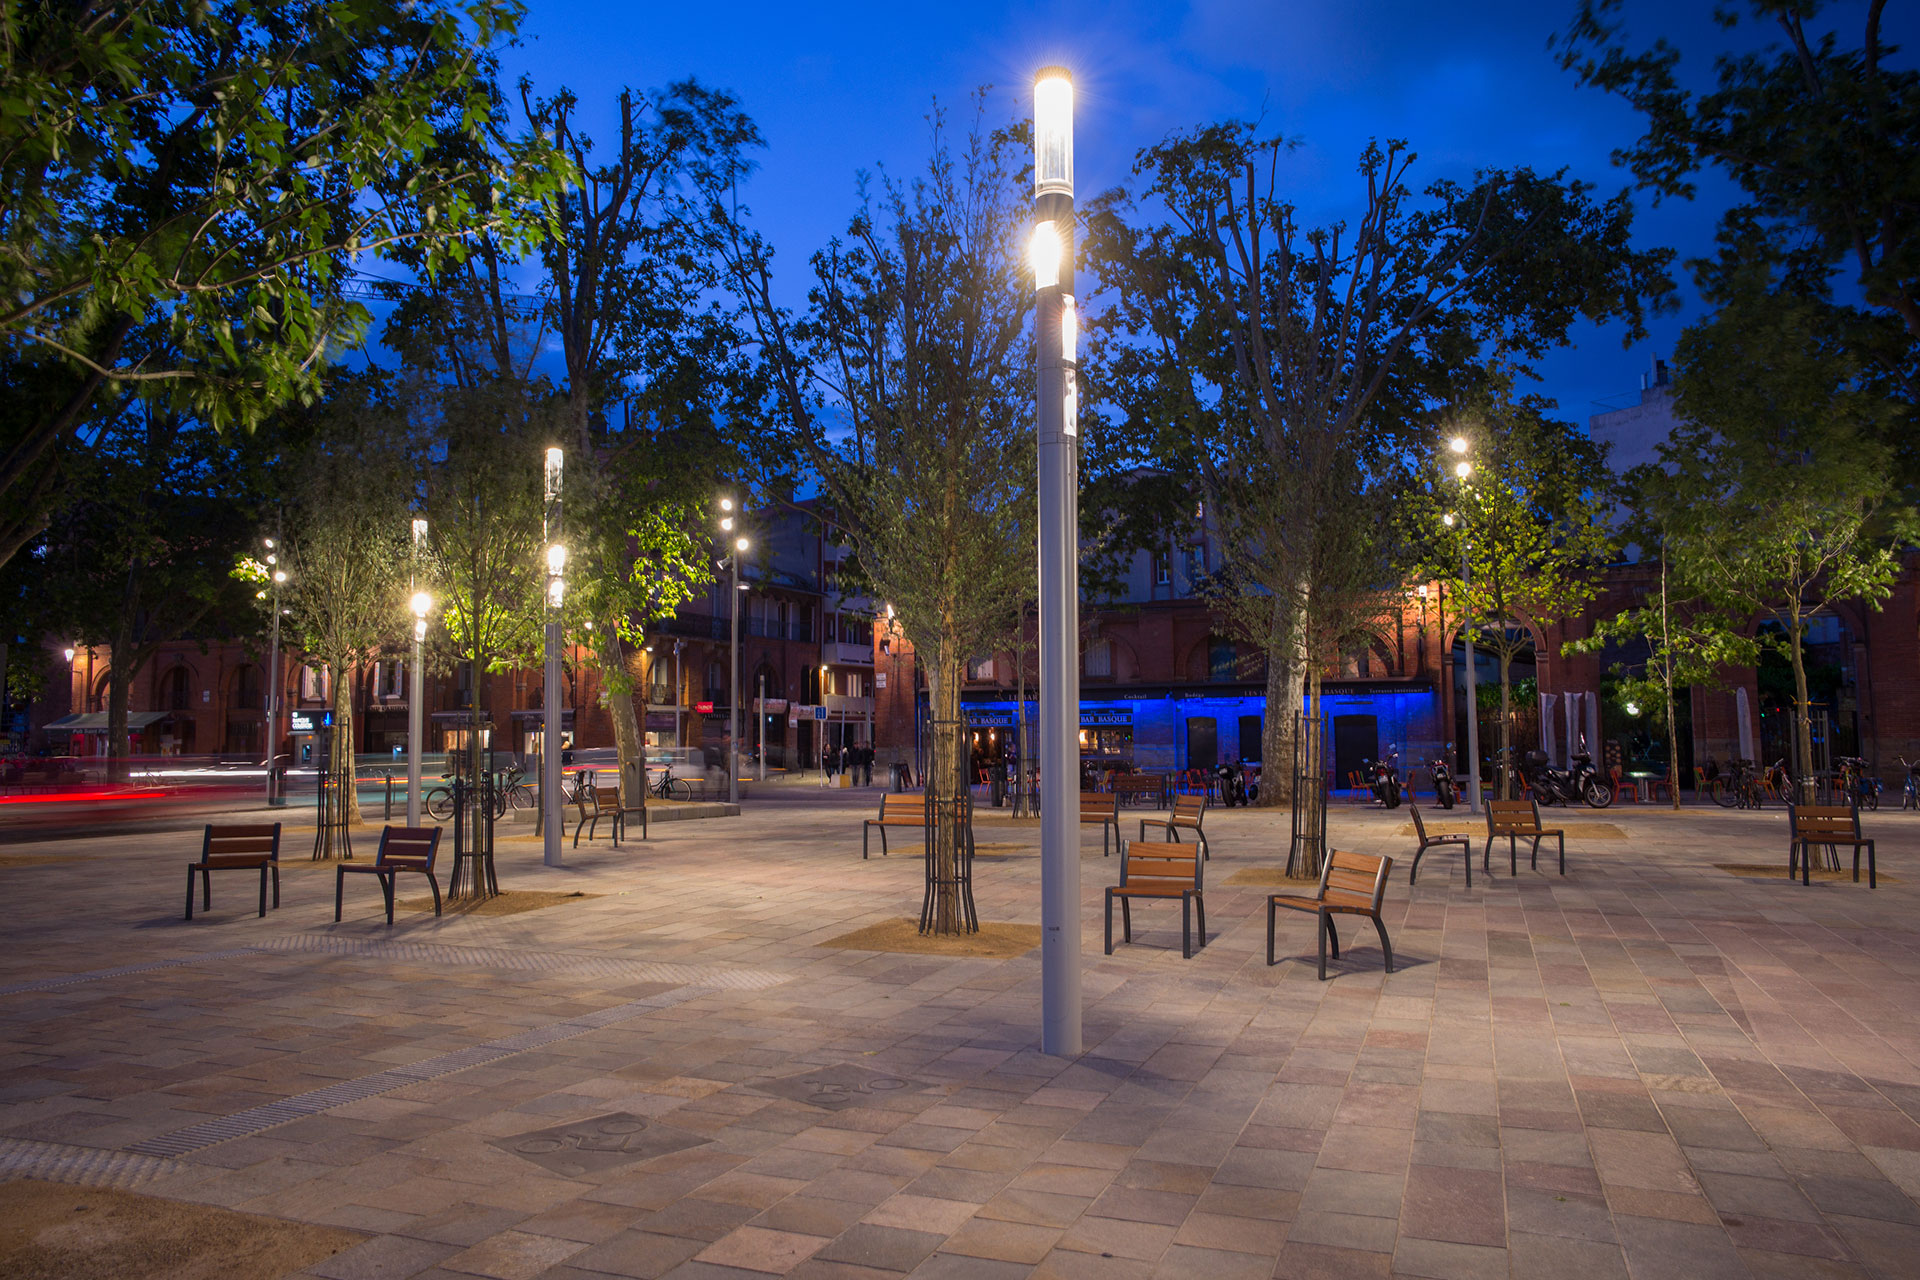 Shuffle ensures that Saint Pierre Square benefits from a warm, uniform light at night to create a welcoming nocturnal ambiance